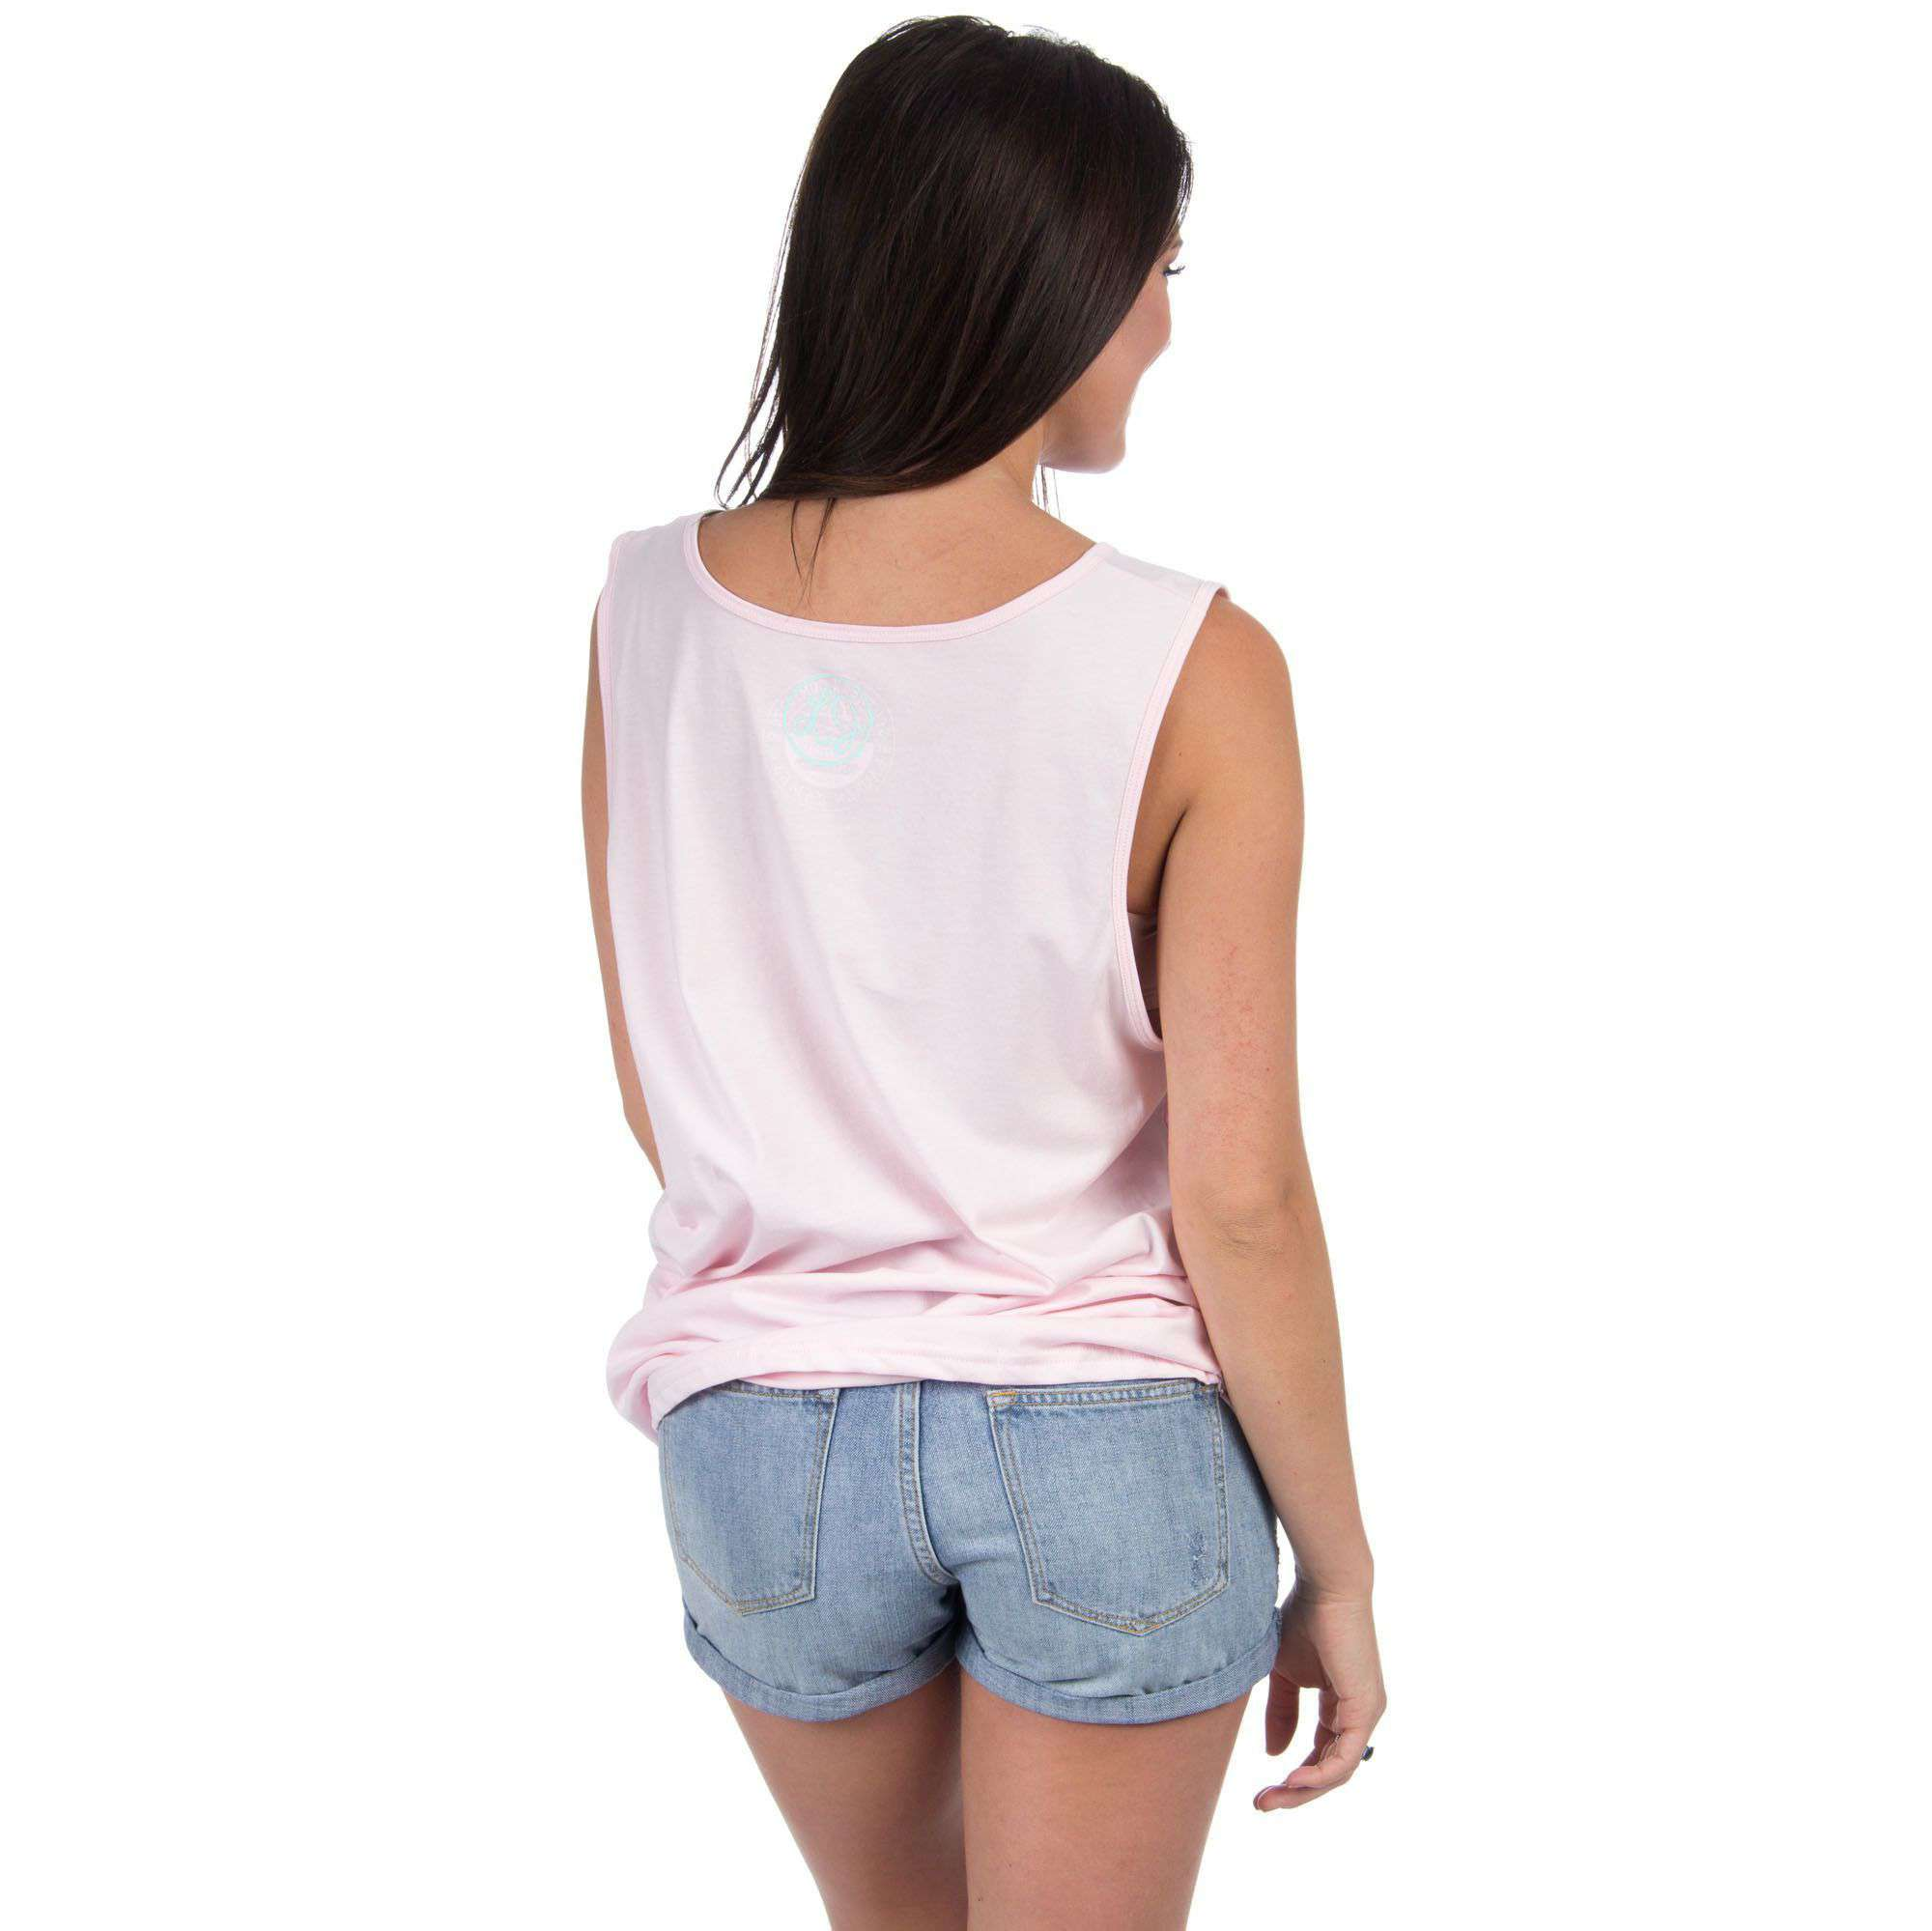 Women's Tee Shirts - South Carolina Lovely State Pocket Tank Top In Pink By Lauren James - FINAL SALE